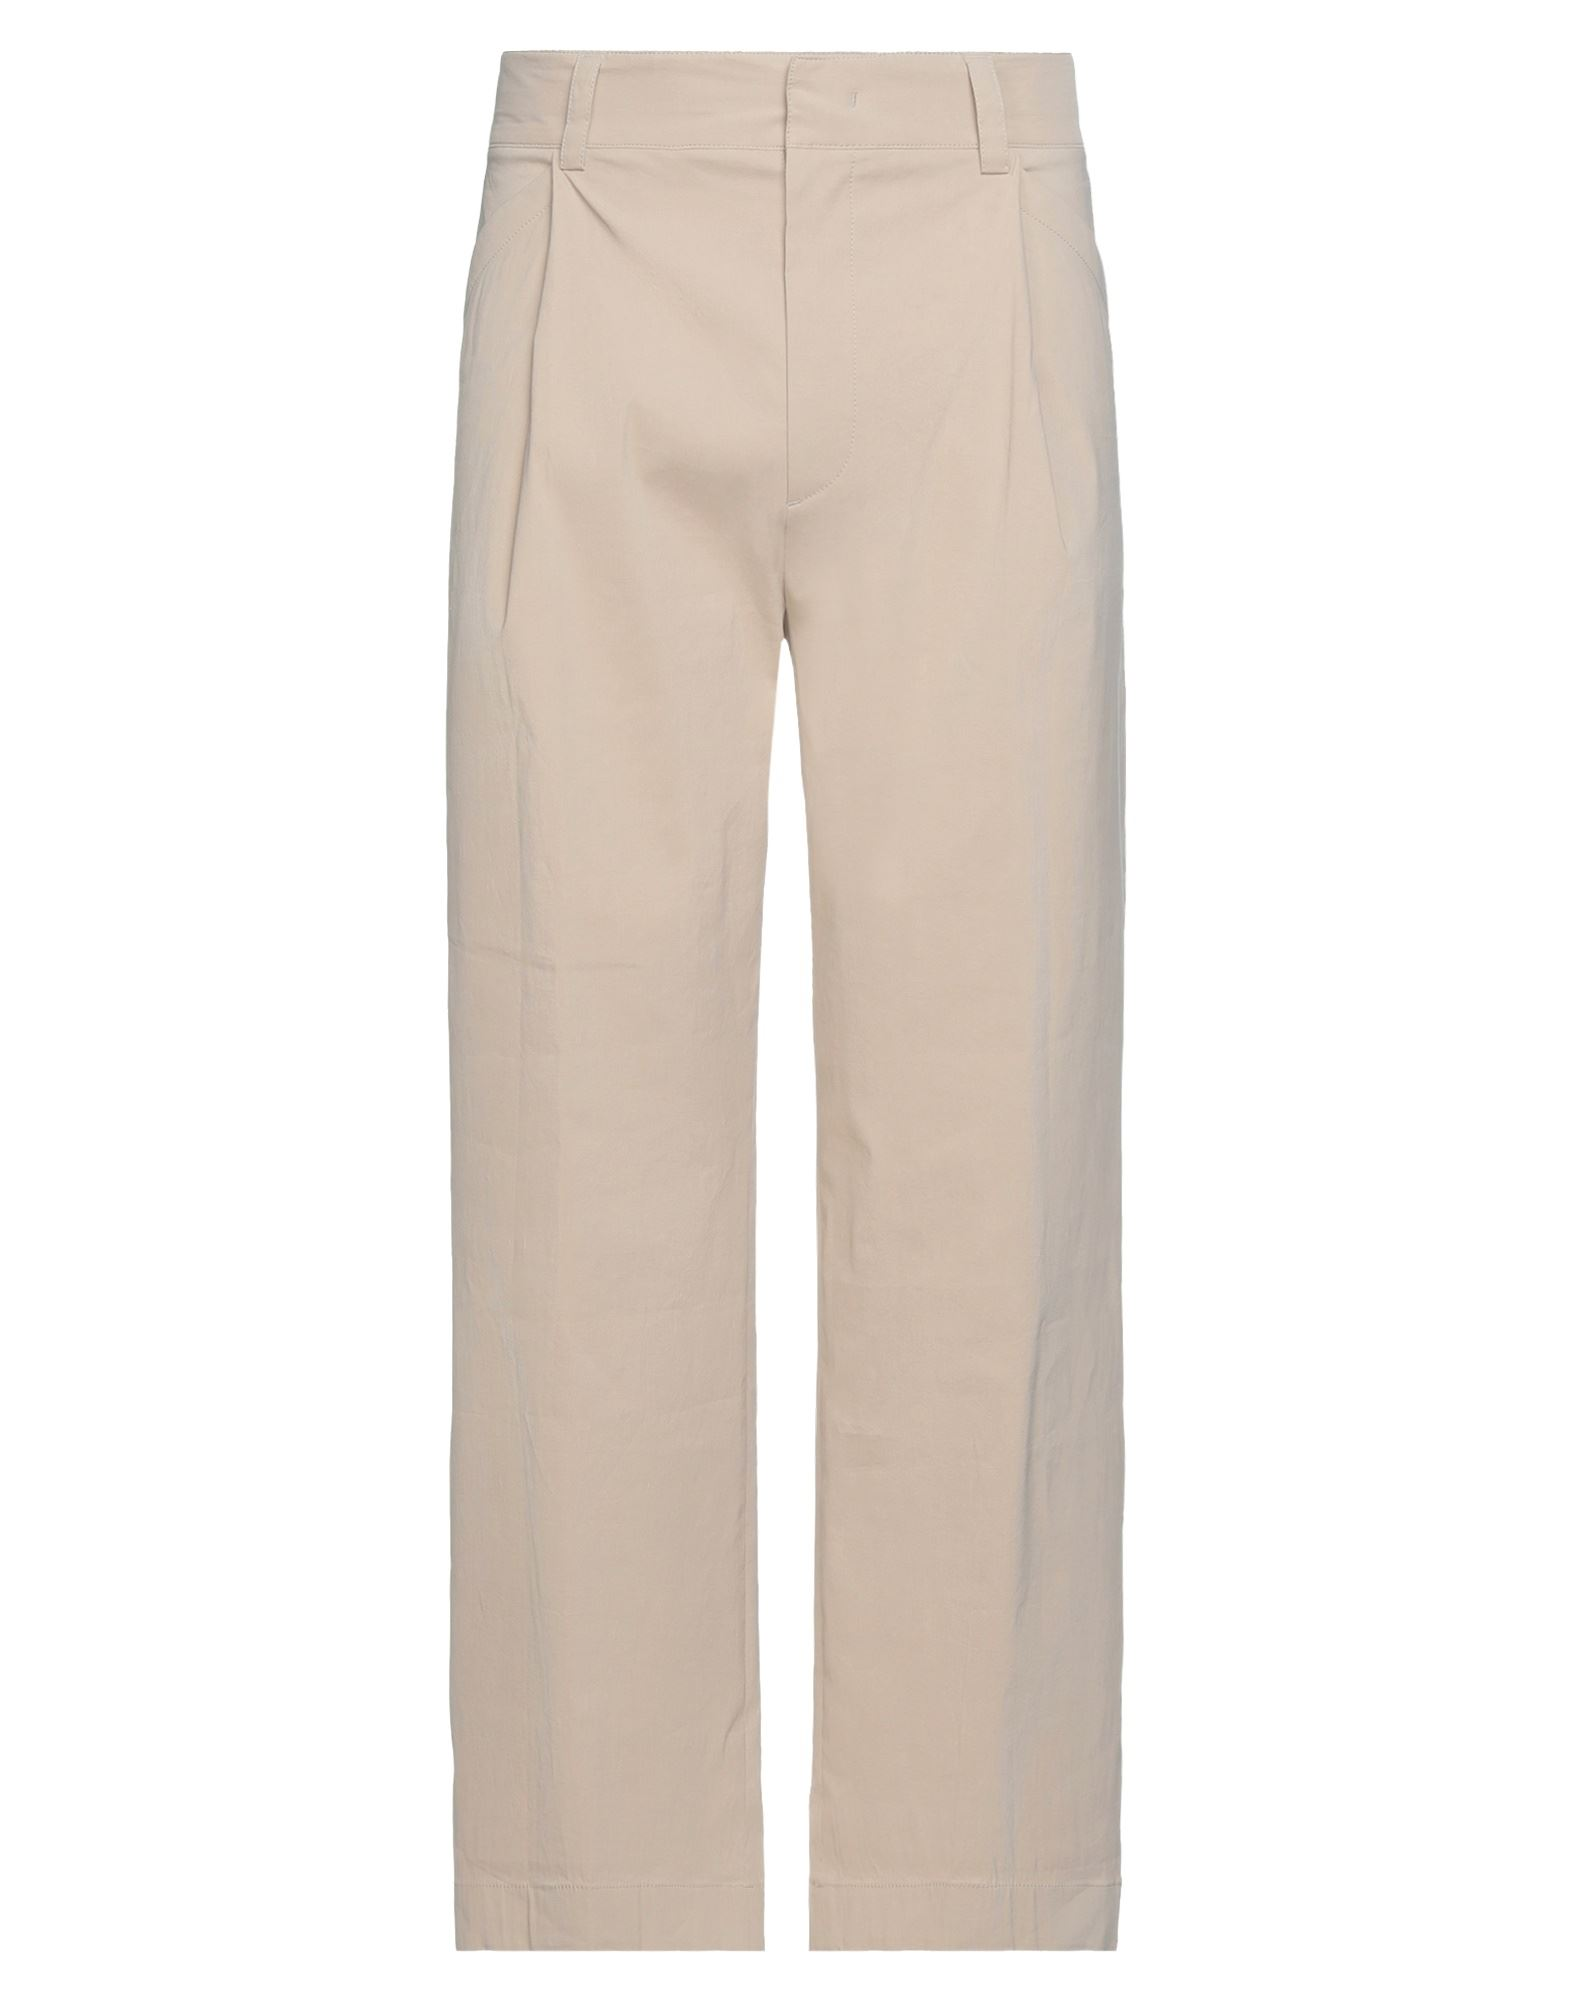 SYSTEM Casual pants - Item 13572696